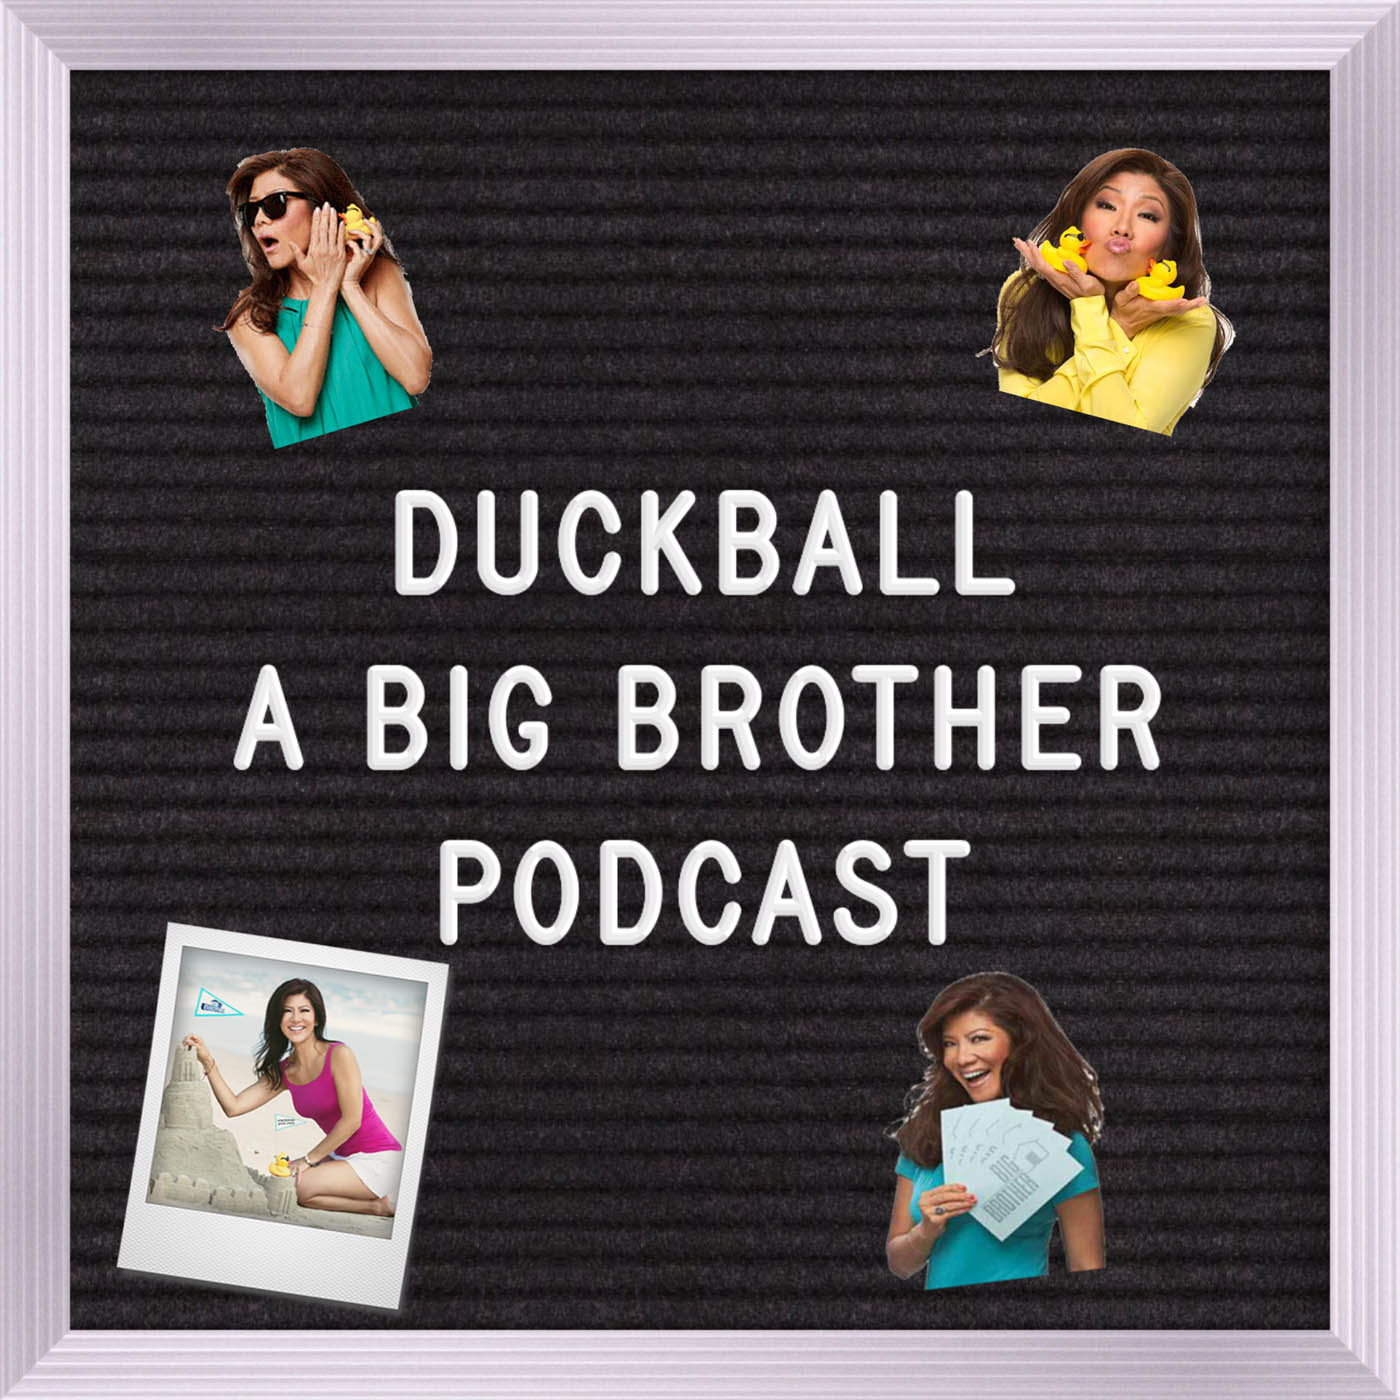 Duckball: A Big Brother Podcast